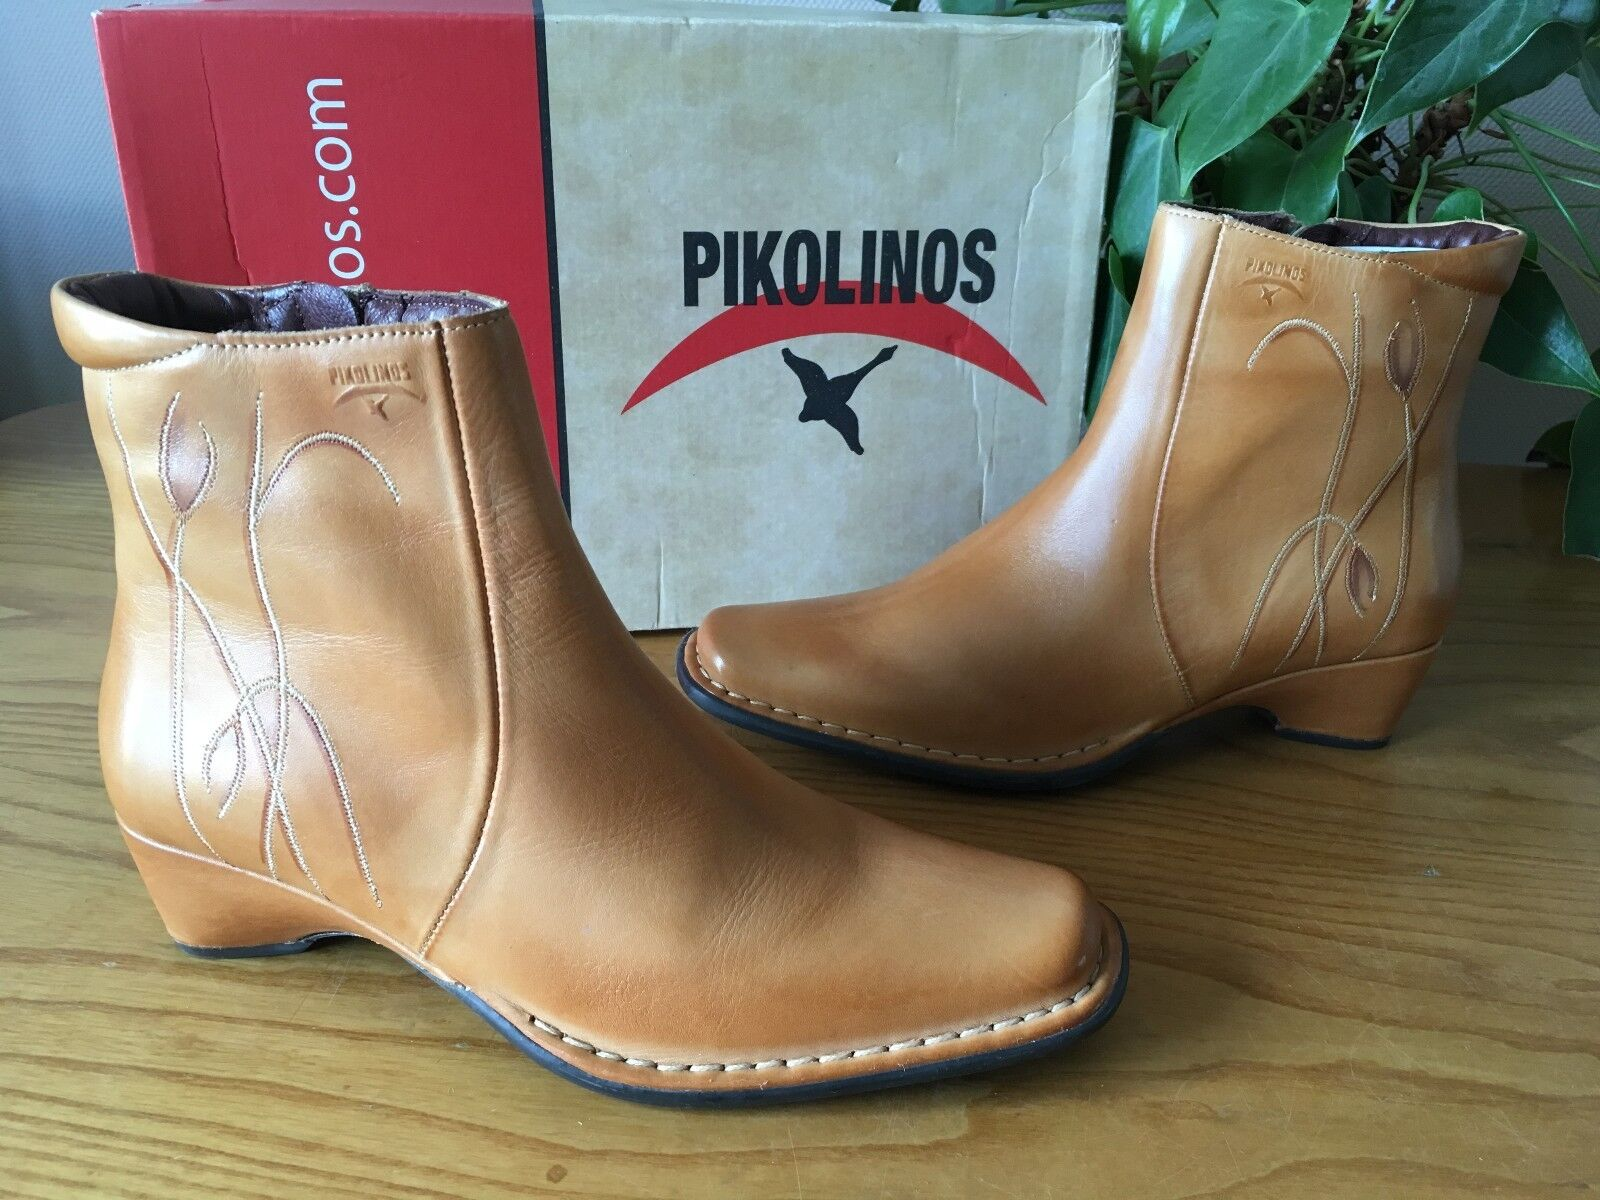 Pikolinos tan leather embroidered detail detail detail ankle boots UK 4 EU 37 BNIB 02cca5